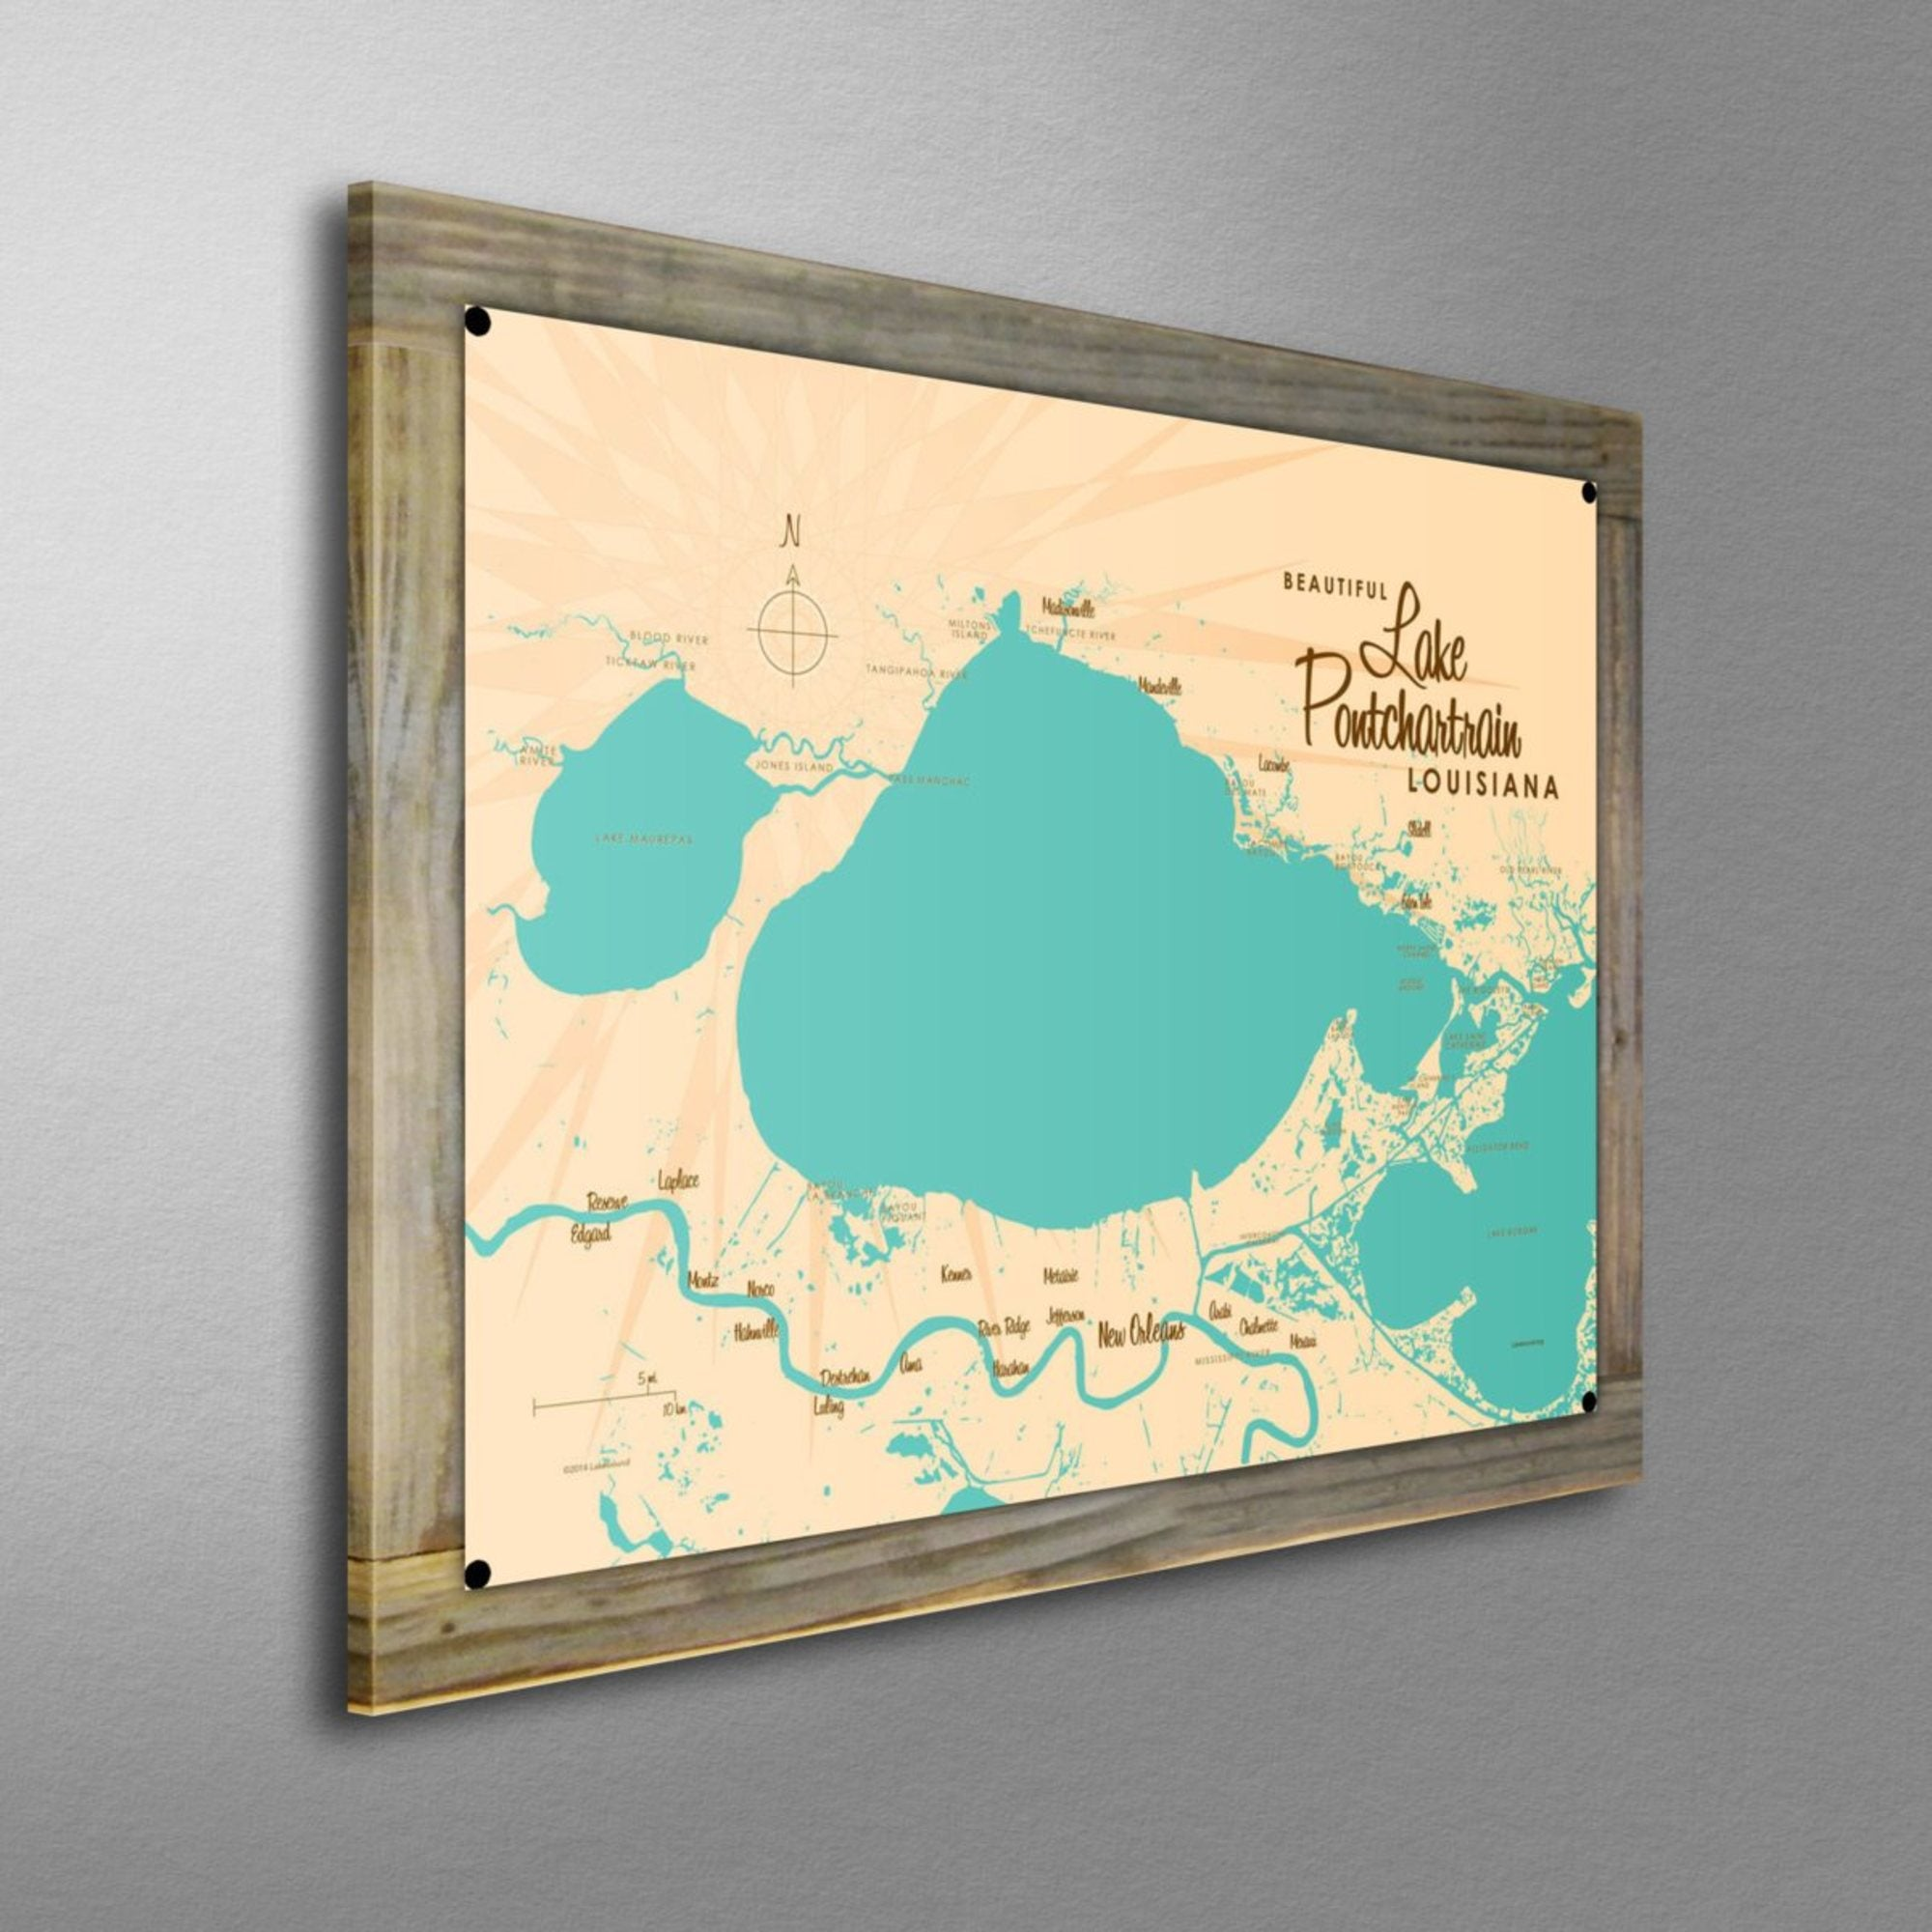 Lake Pontchartrain Louisiana, Wood-Mounted Metal Sign Map Art